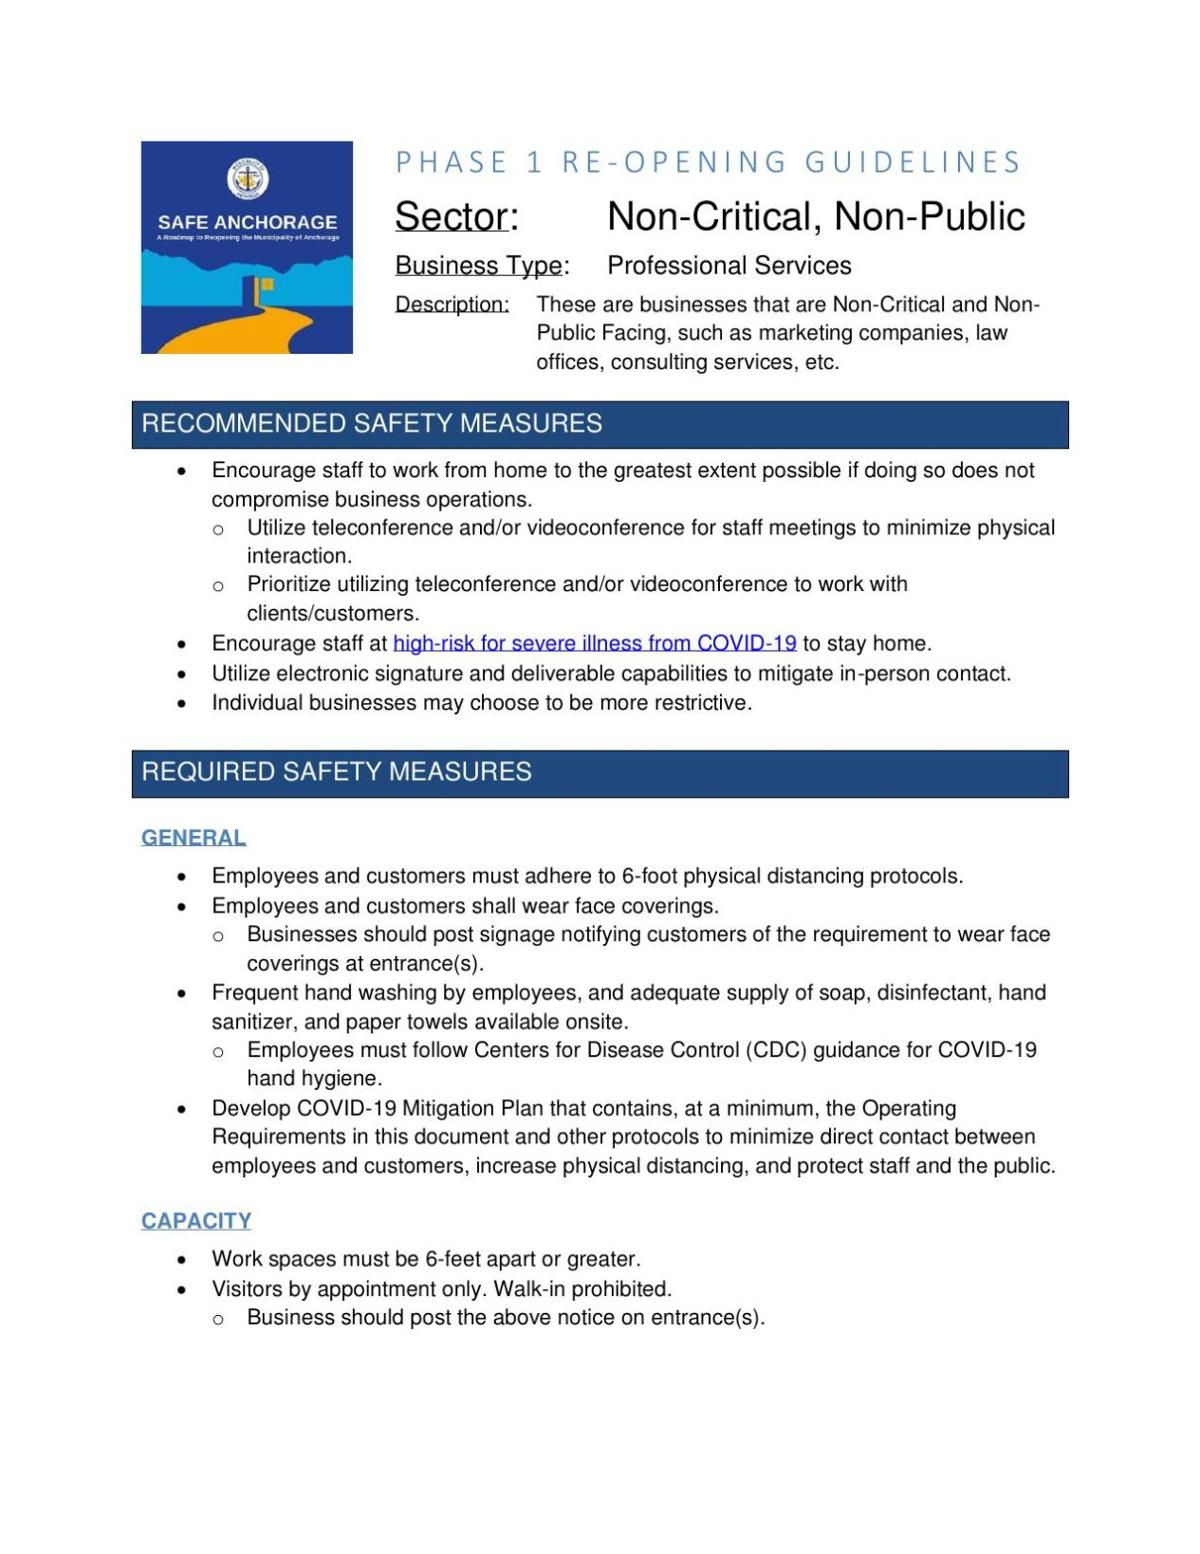 FINAL Operating Criteria - Non-Critical Professional Services.pdf